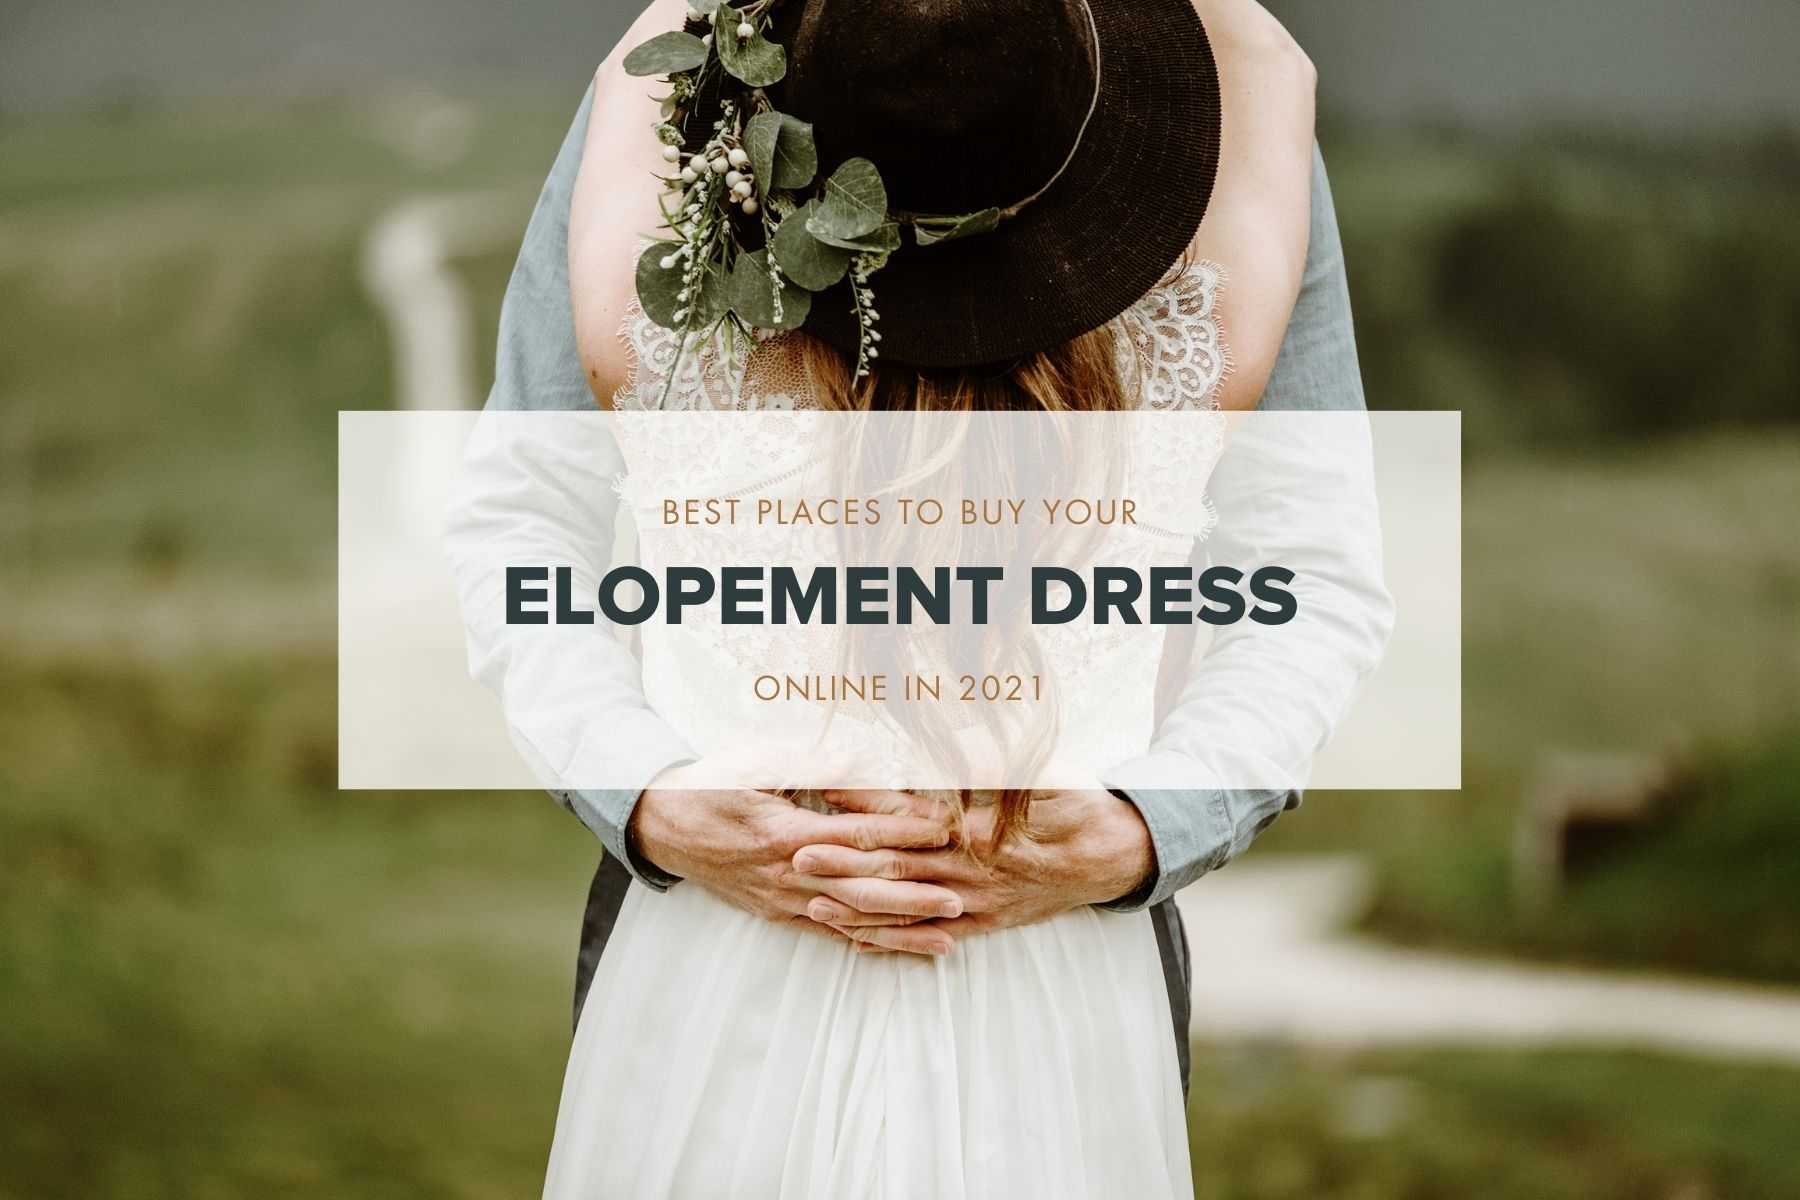 Best places to buy an elopement dress blog post